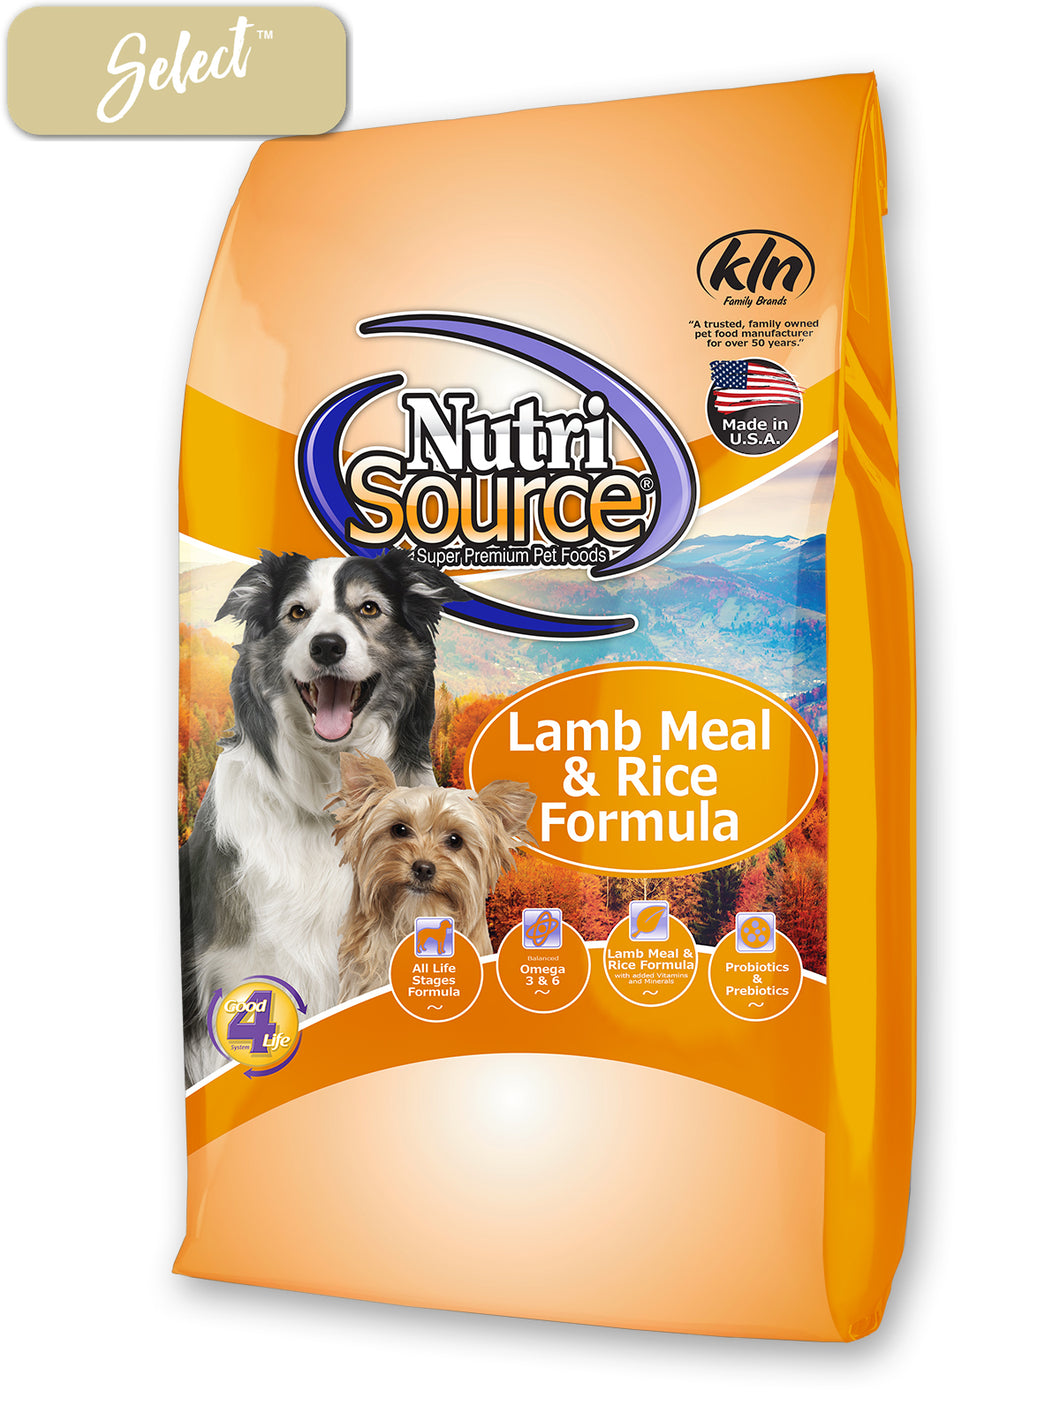 Nutrisource Lamb Meal and Rice Dog Food